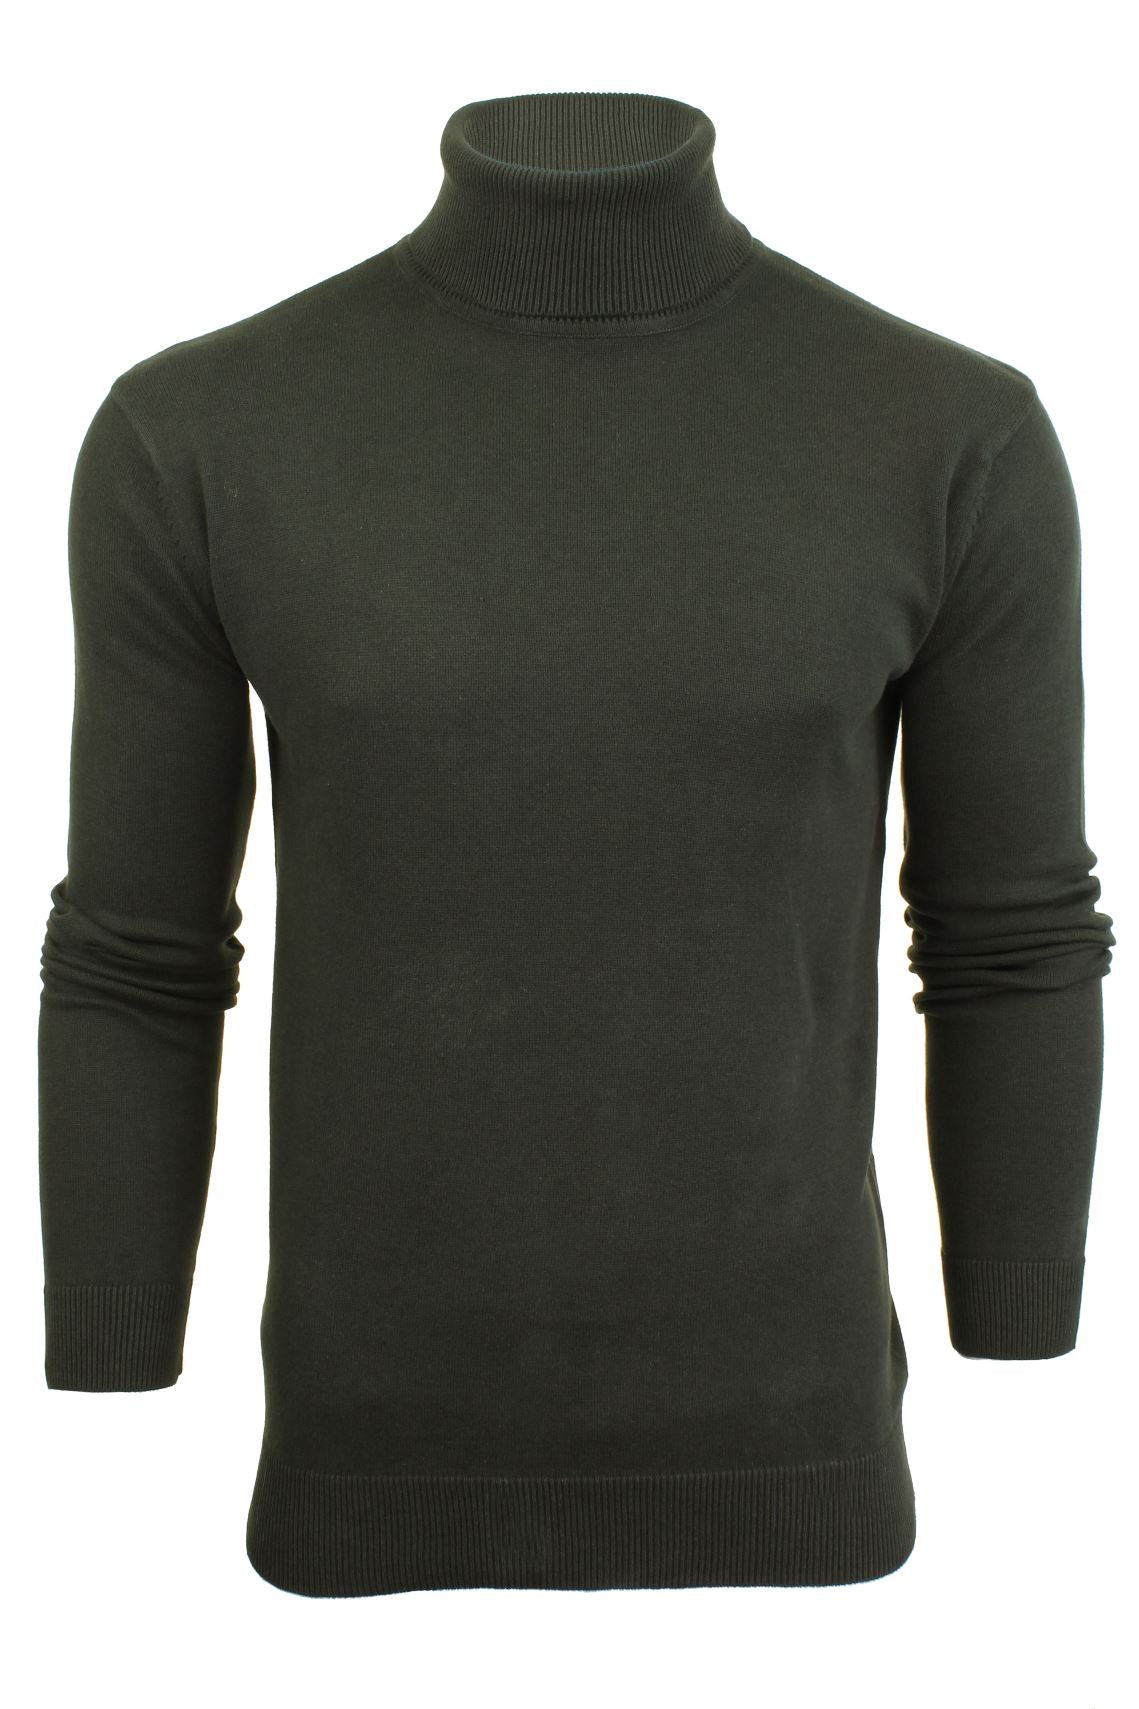 Mens Roll Polo Neck Jumper by Brave Soul 'Hume'-Main Image